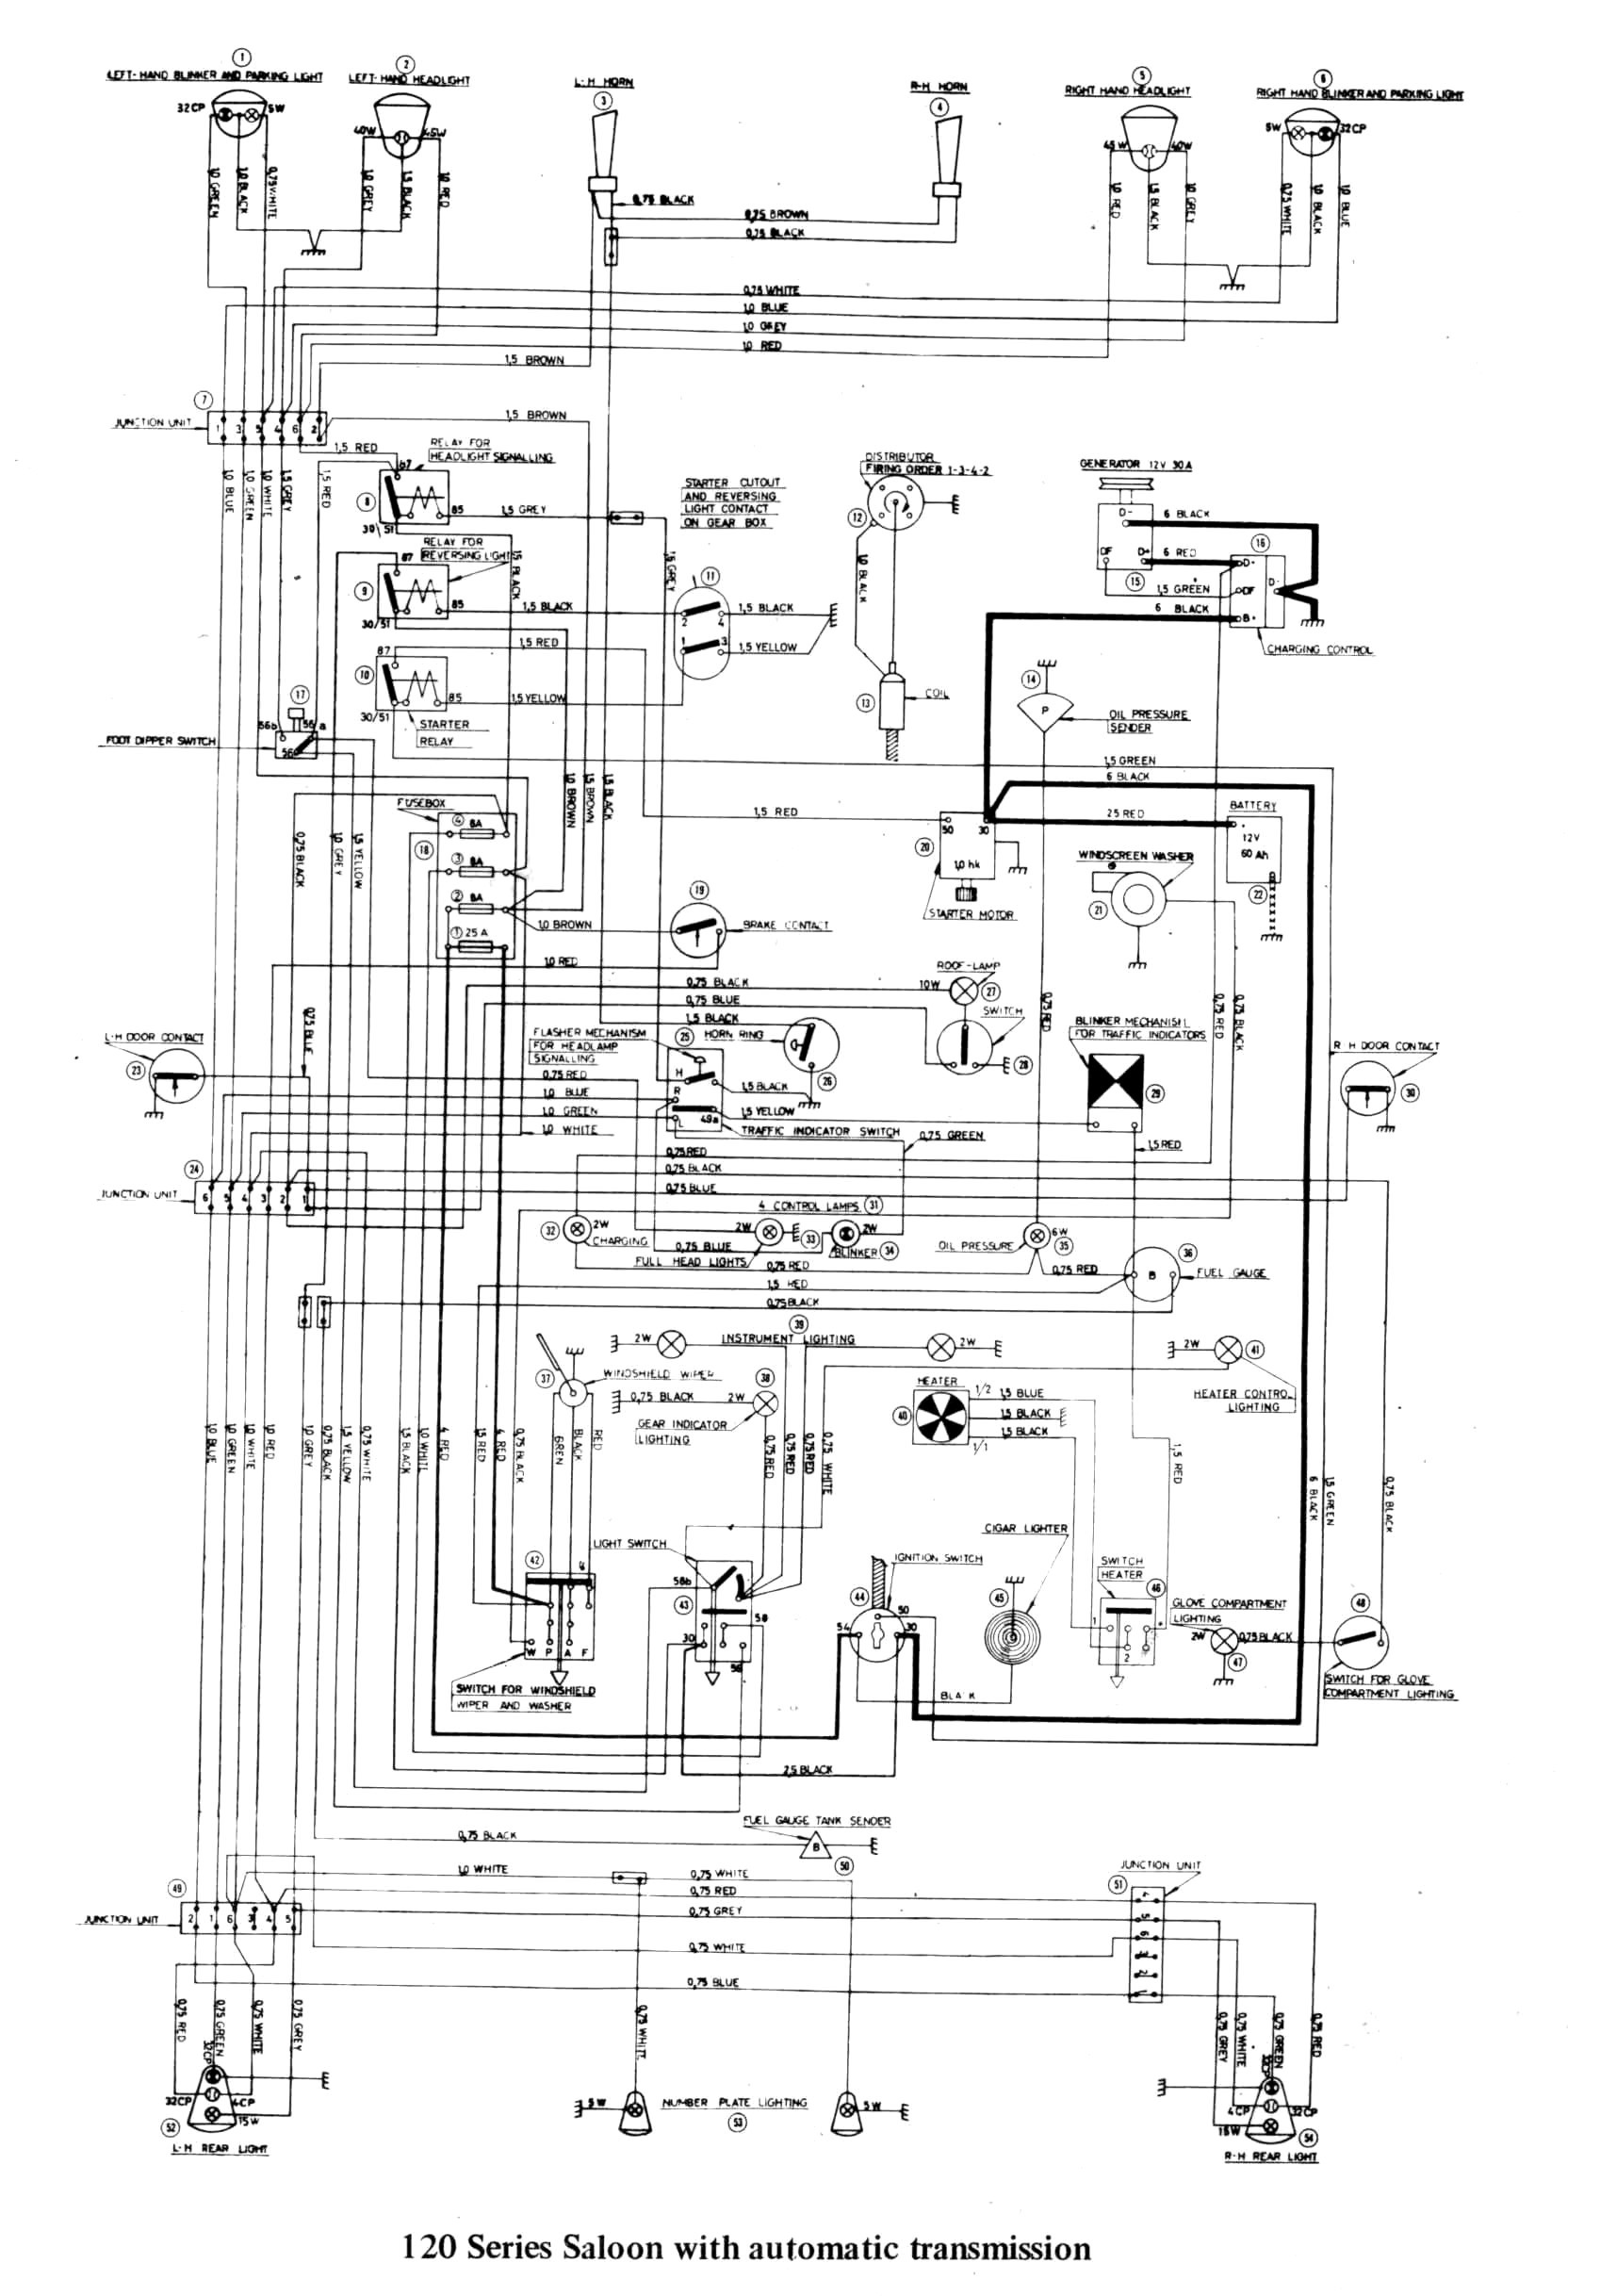 Outside Ac Fan Motor Wiring Schematic Diagrams Unit Typical Condensing Diagram Trusted Capacitor